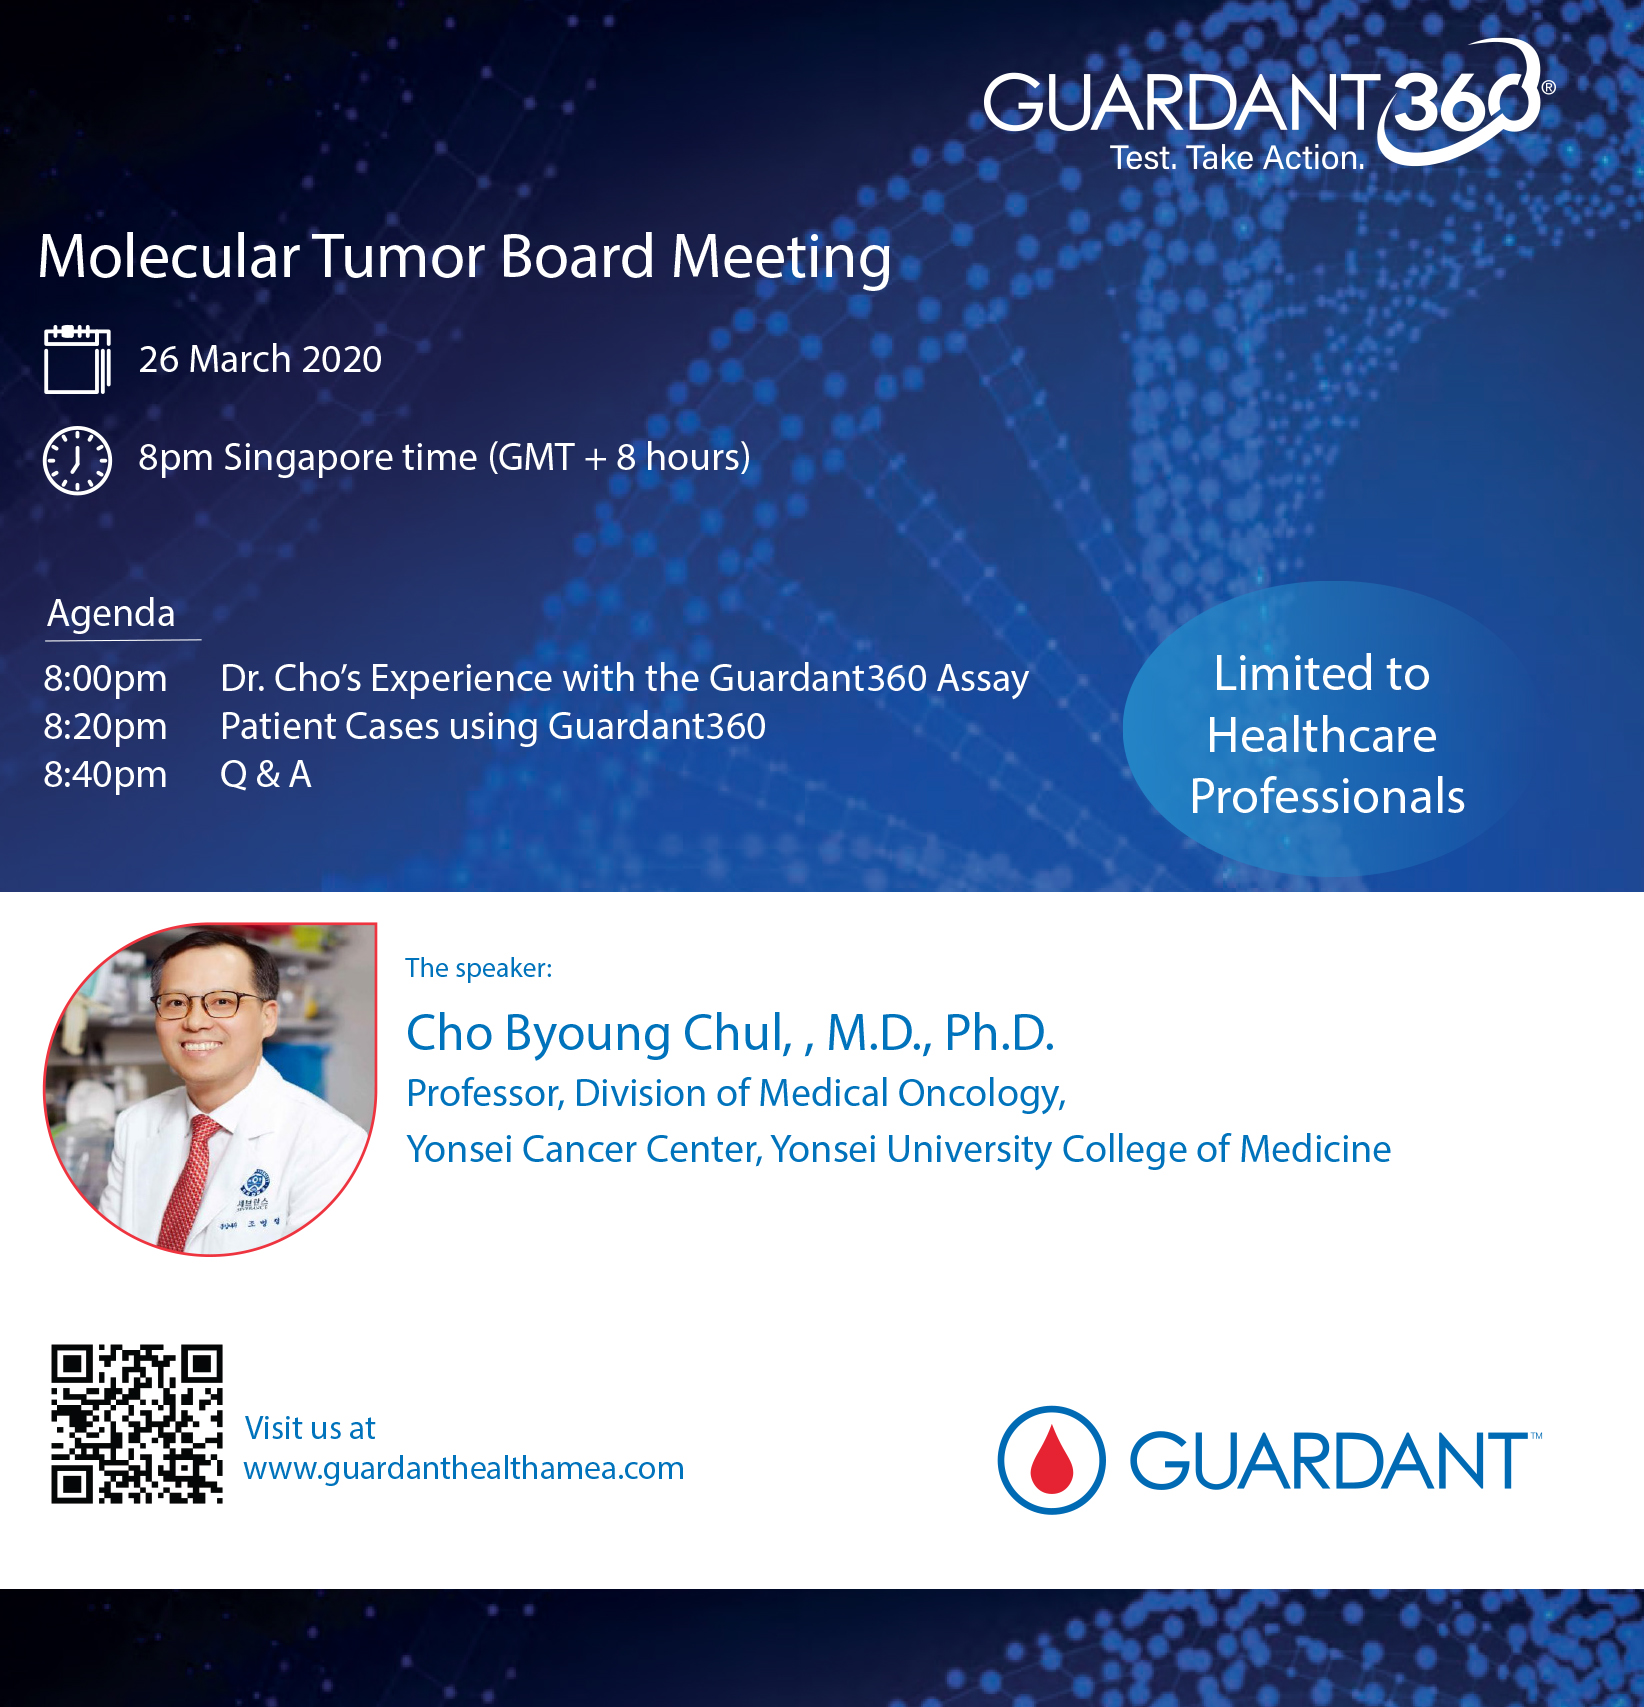 Looking forward to the live webinar discussion tonight led by Dr Cho Byoung Chul